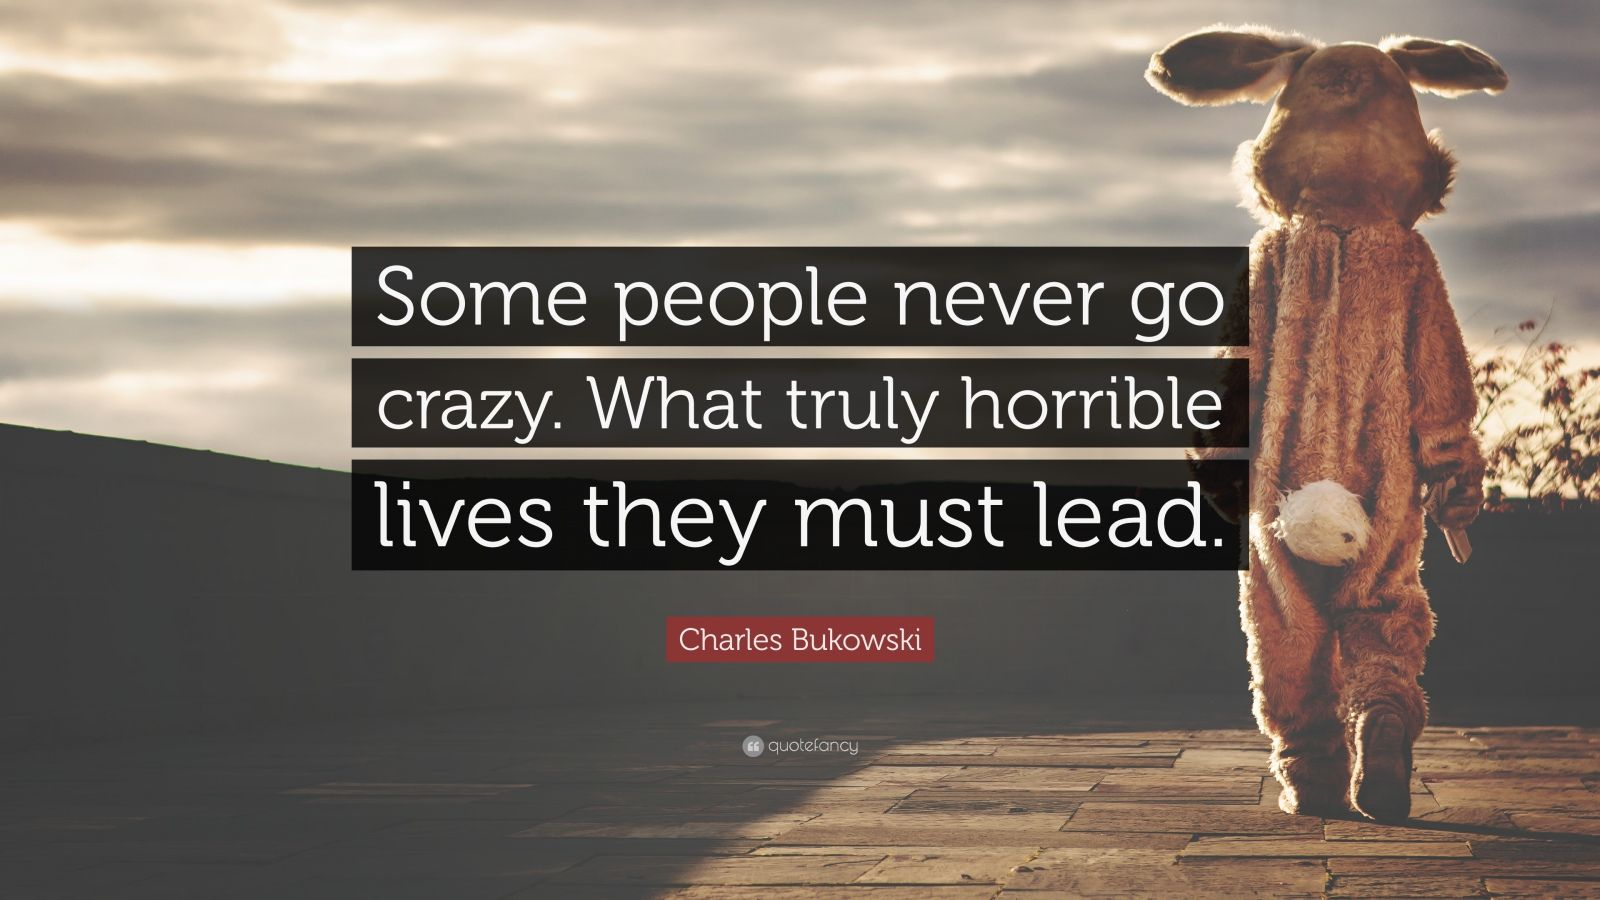 Psychology Wallpaper Quotes Charles Bukowski Quote Some People Never Go Crazy What